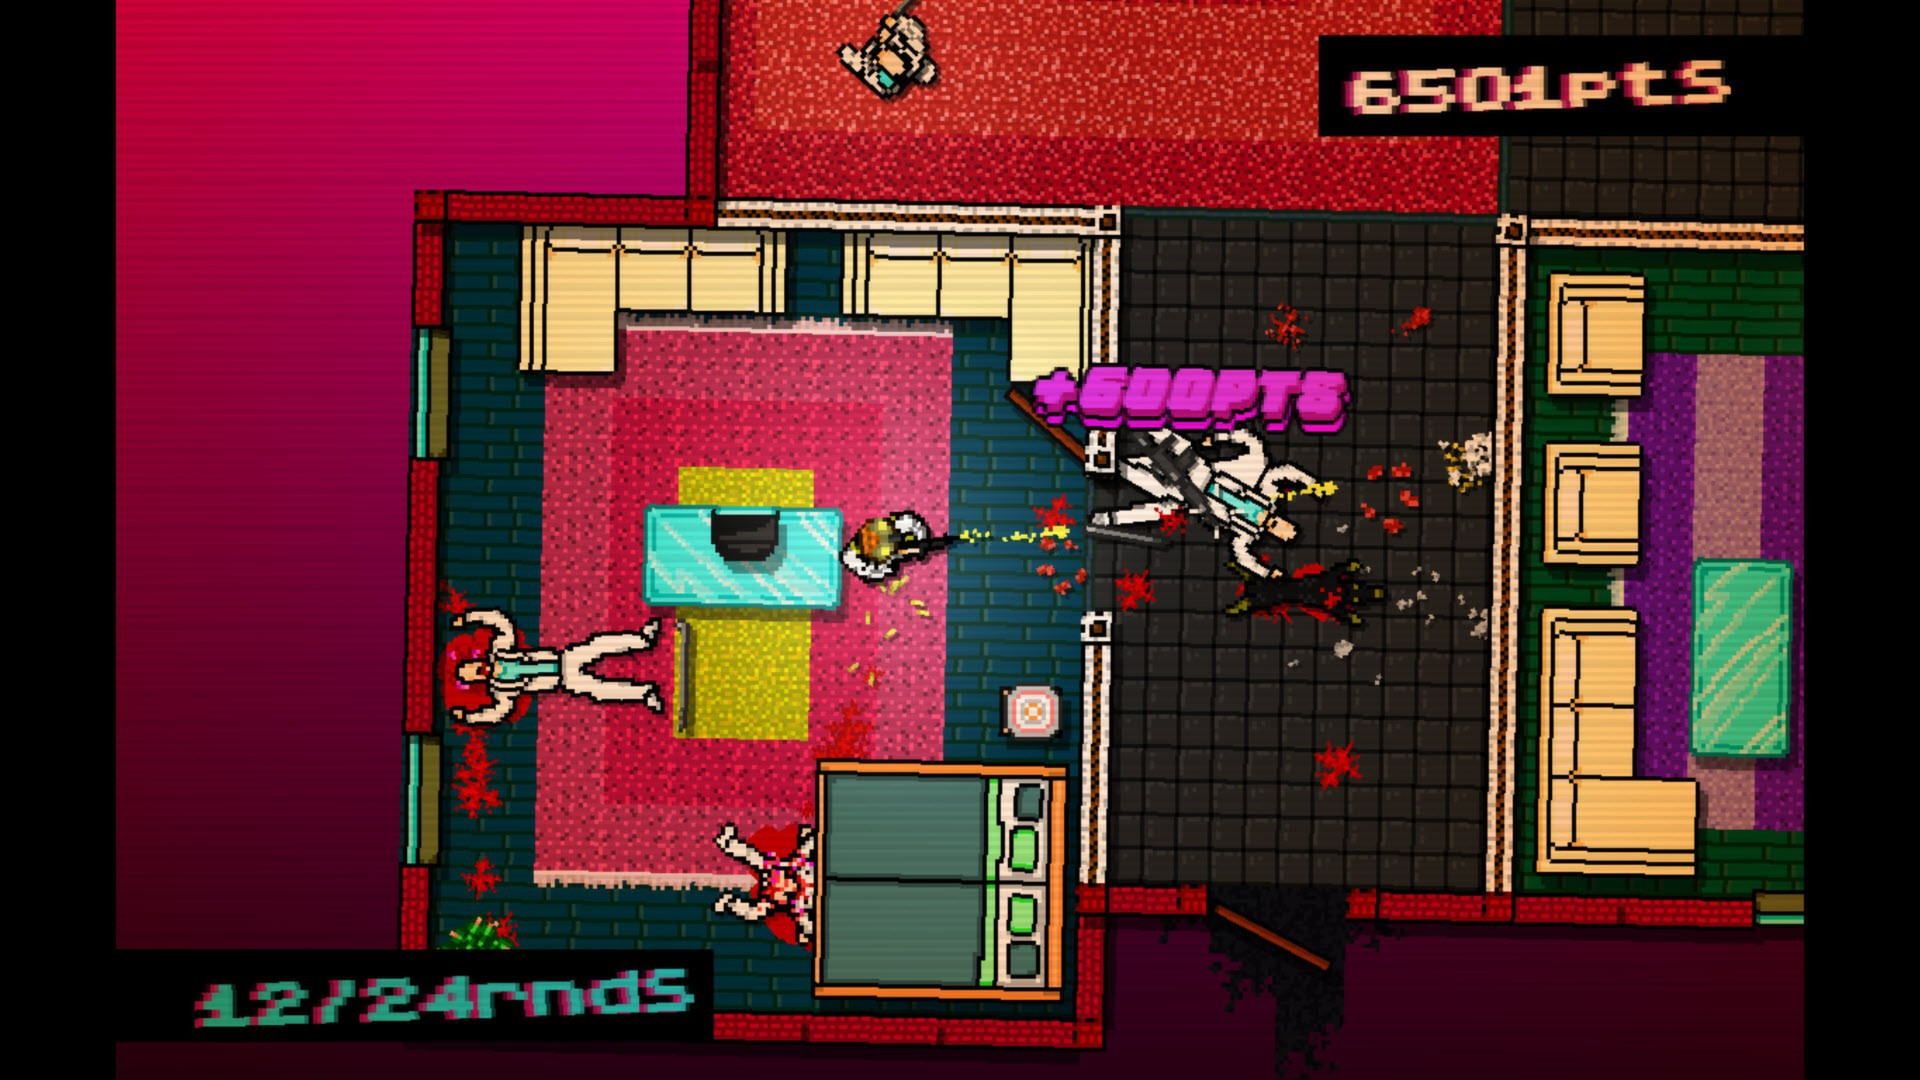 Hotline Miami screenshot 1